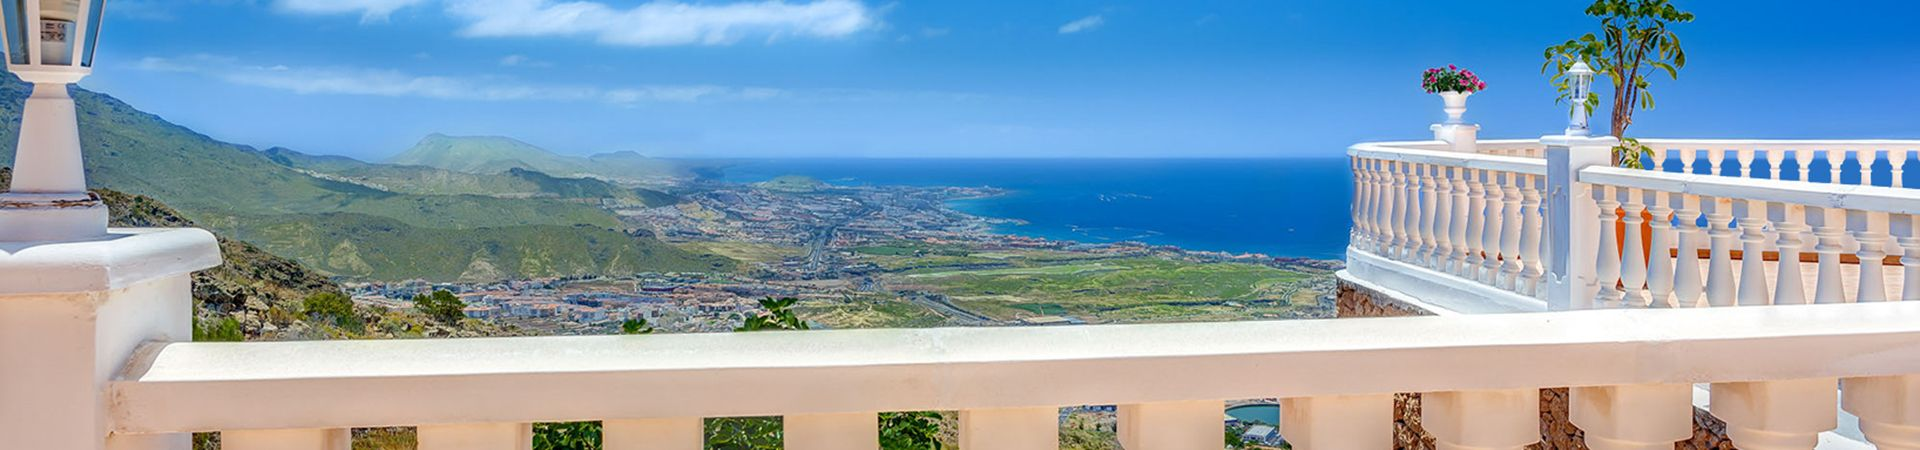 Luxury Villa For Sale in Tenerife